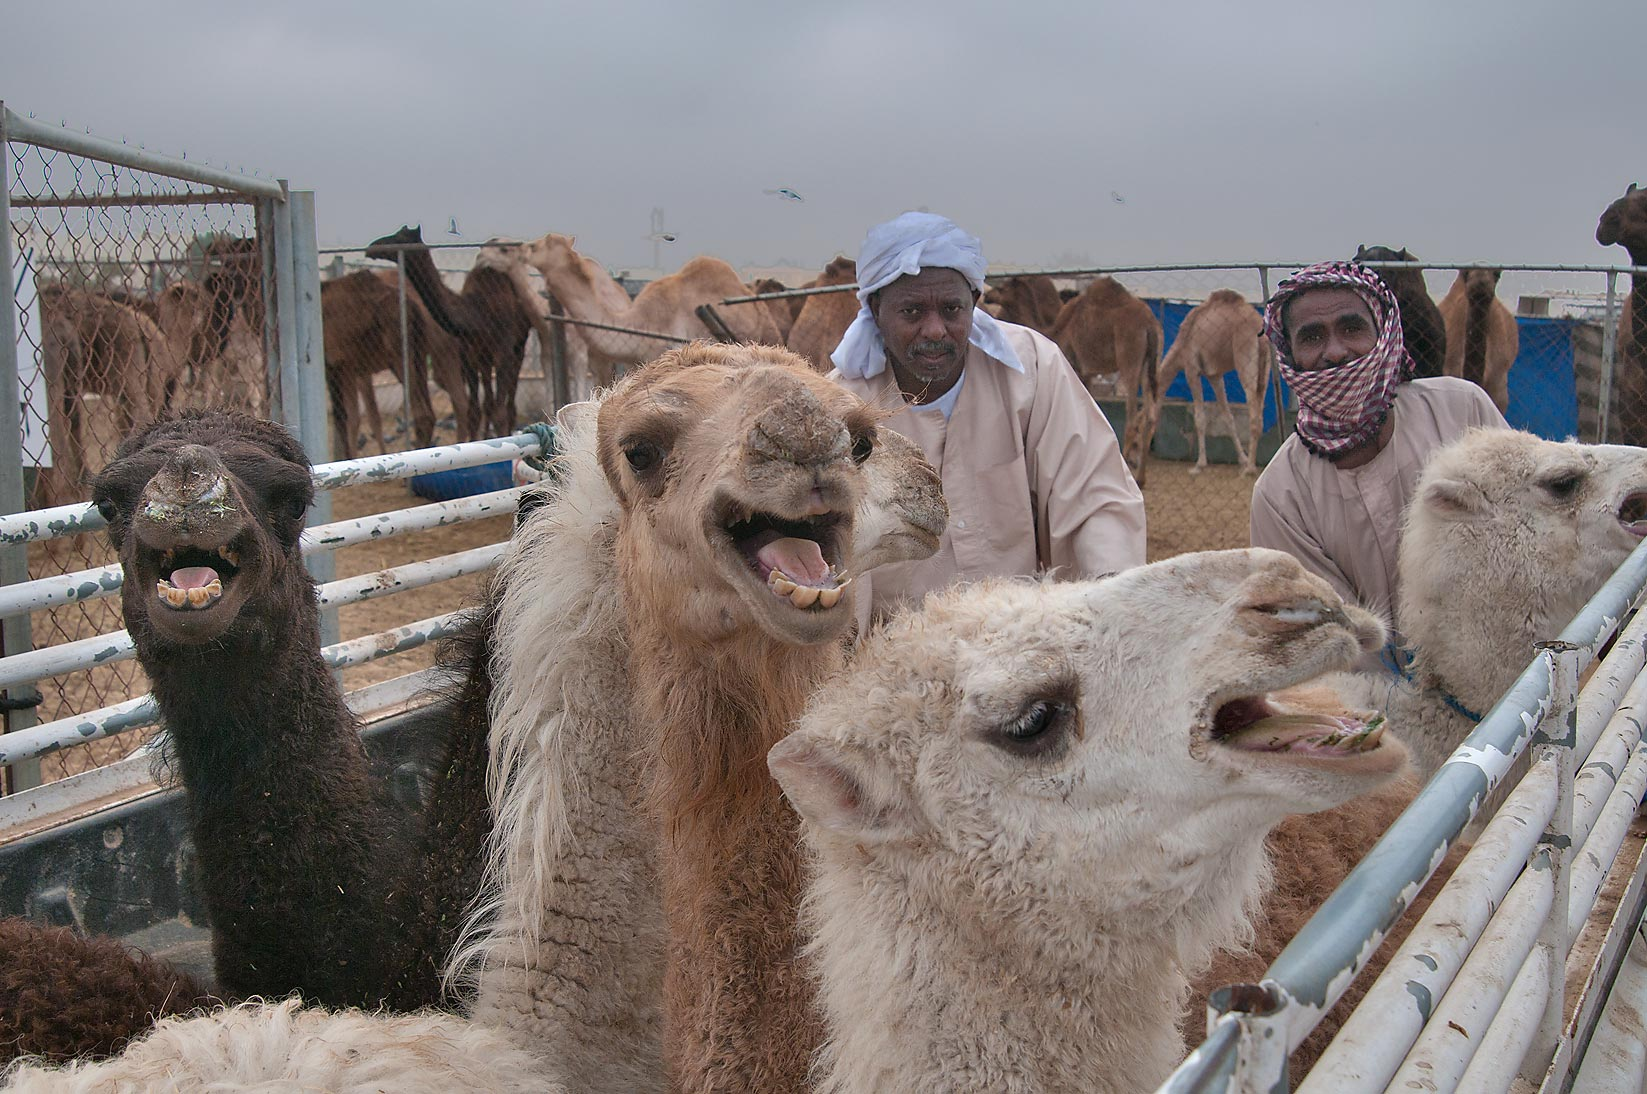 Angry camels in Camel Market (Souq). Doha, Qatar